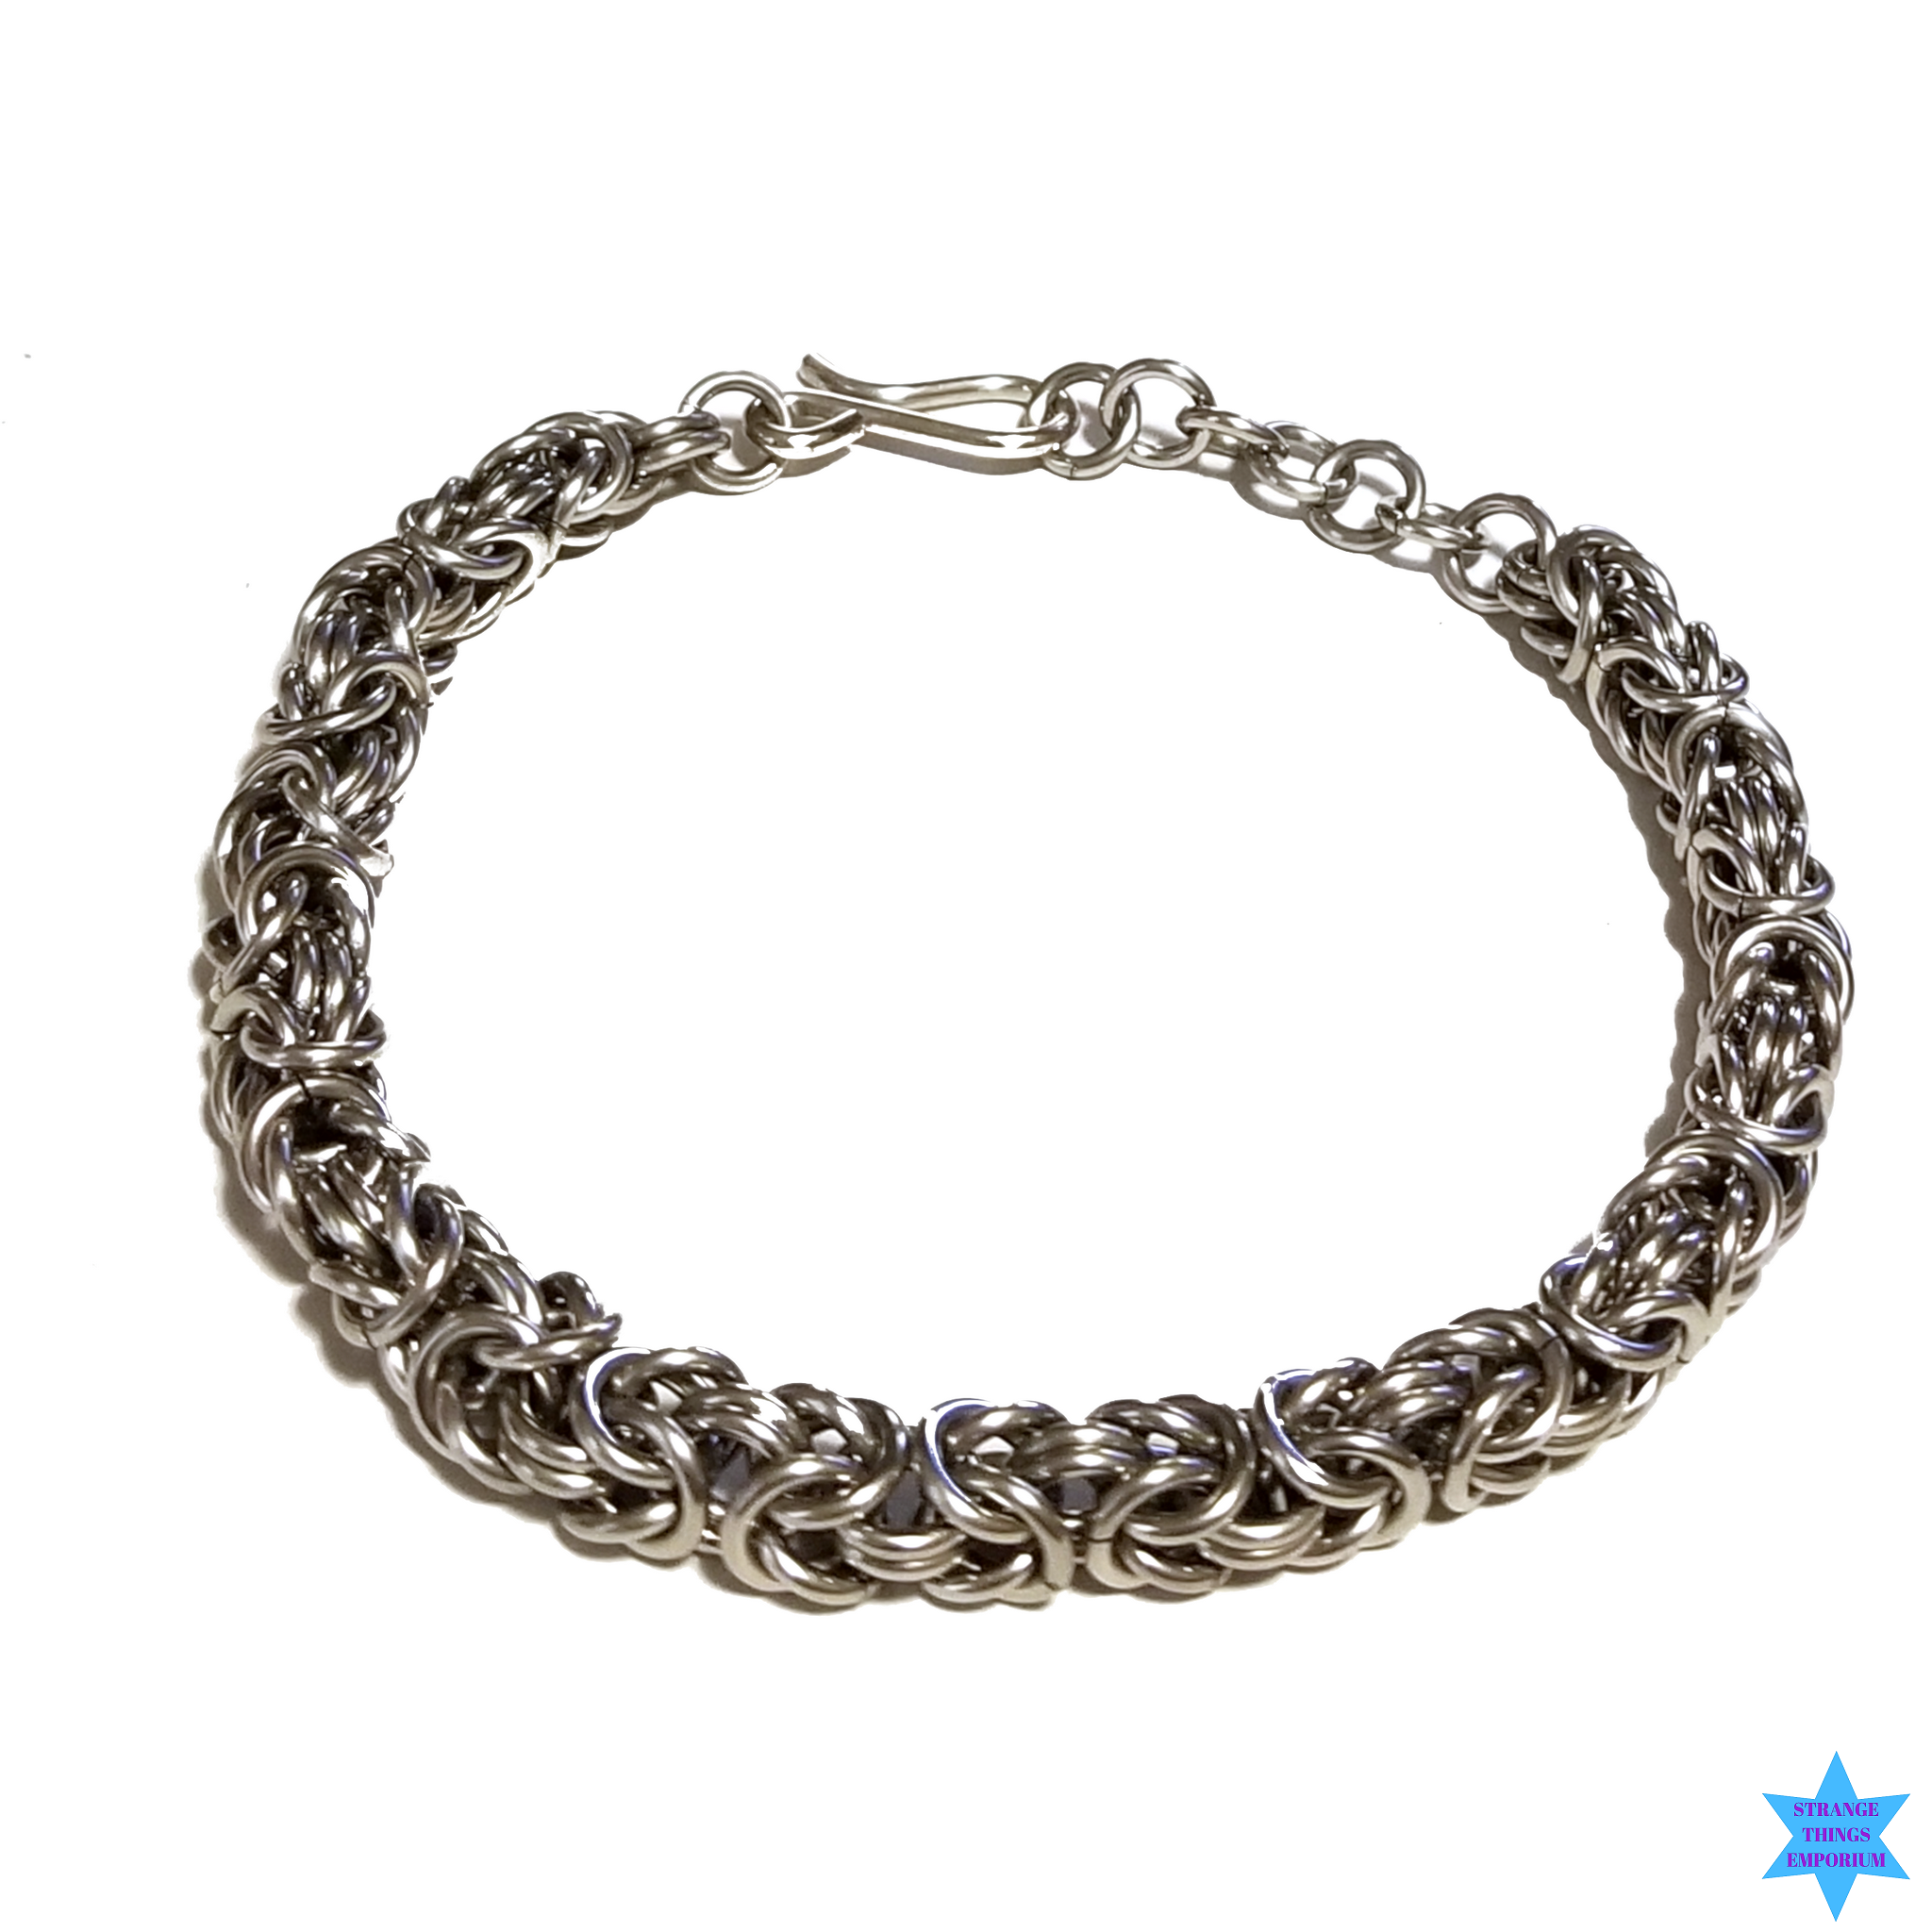 Steel Loop Bracelet - Strange Things Emporium